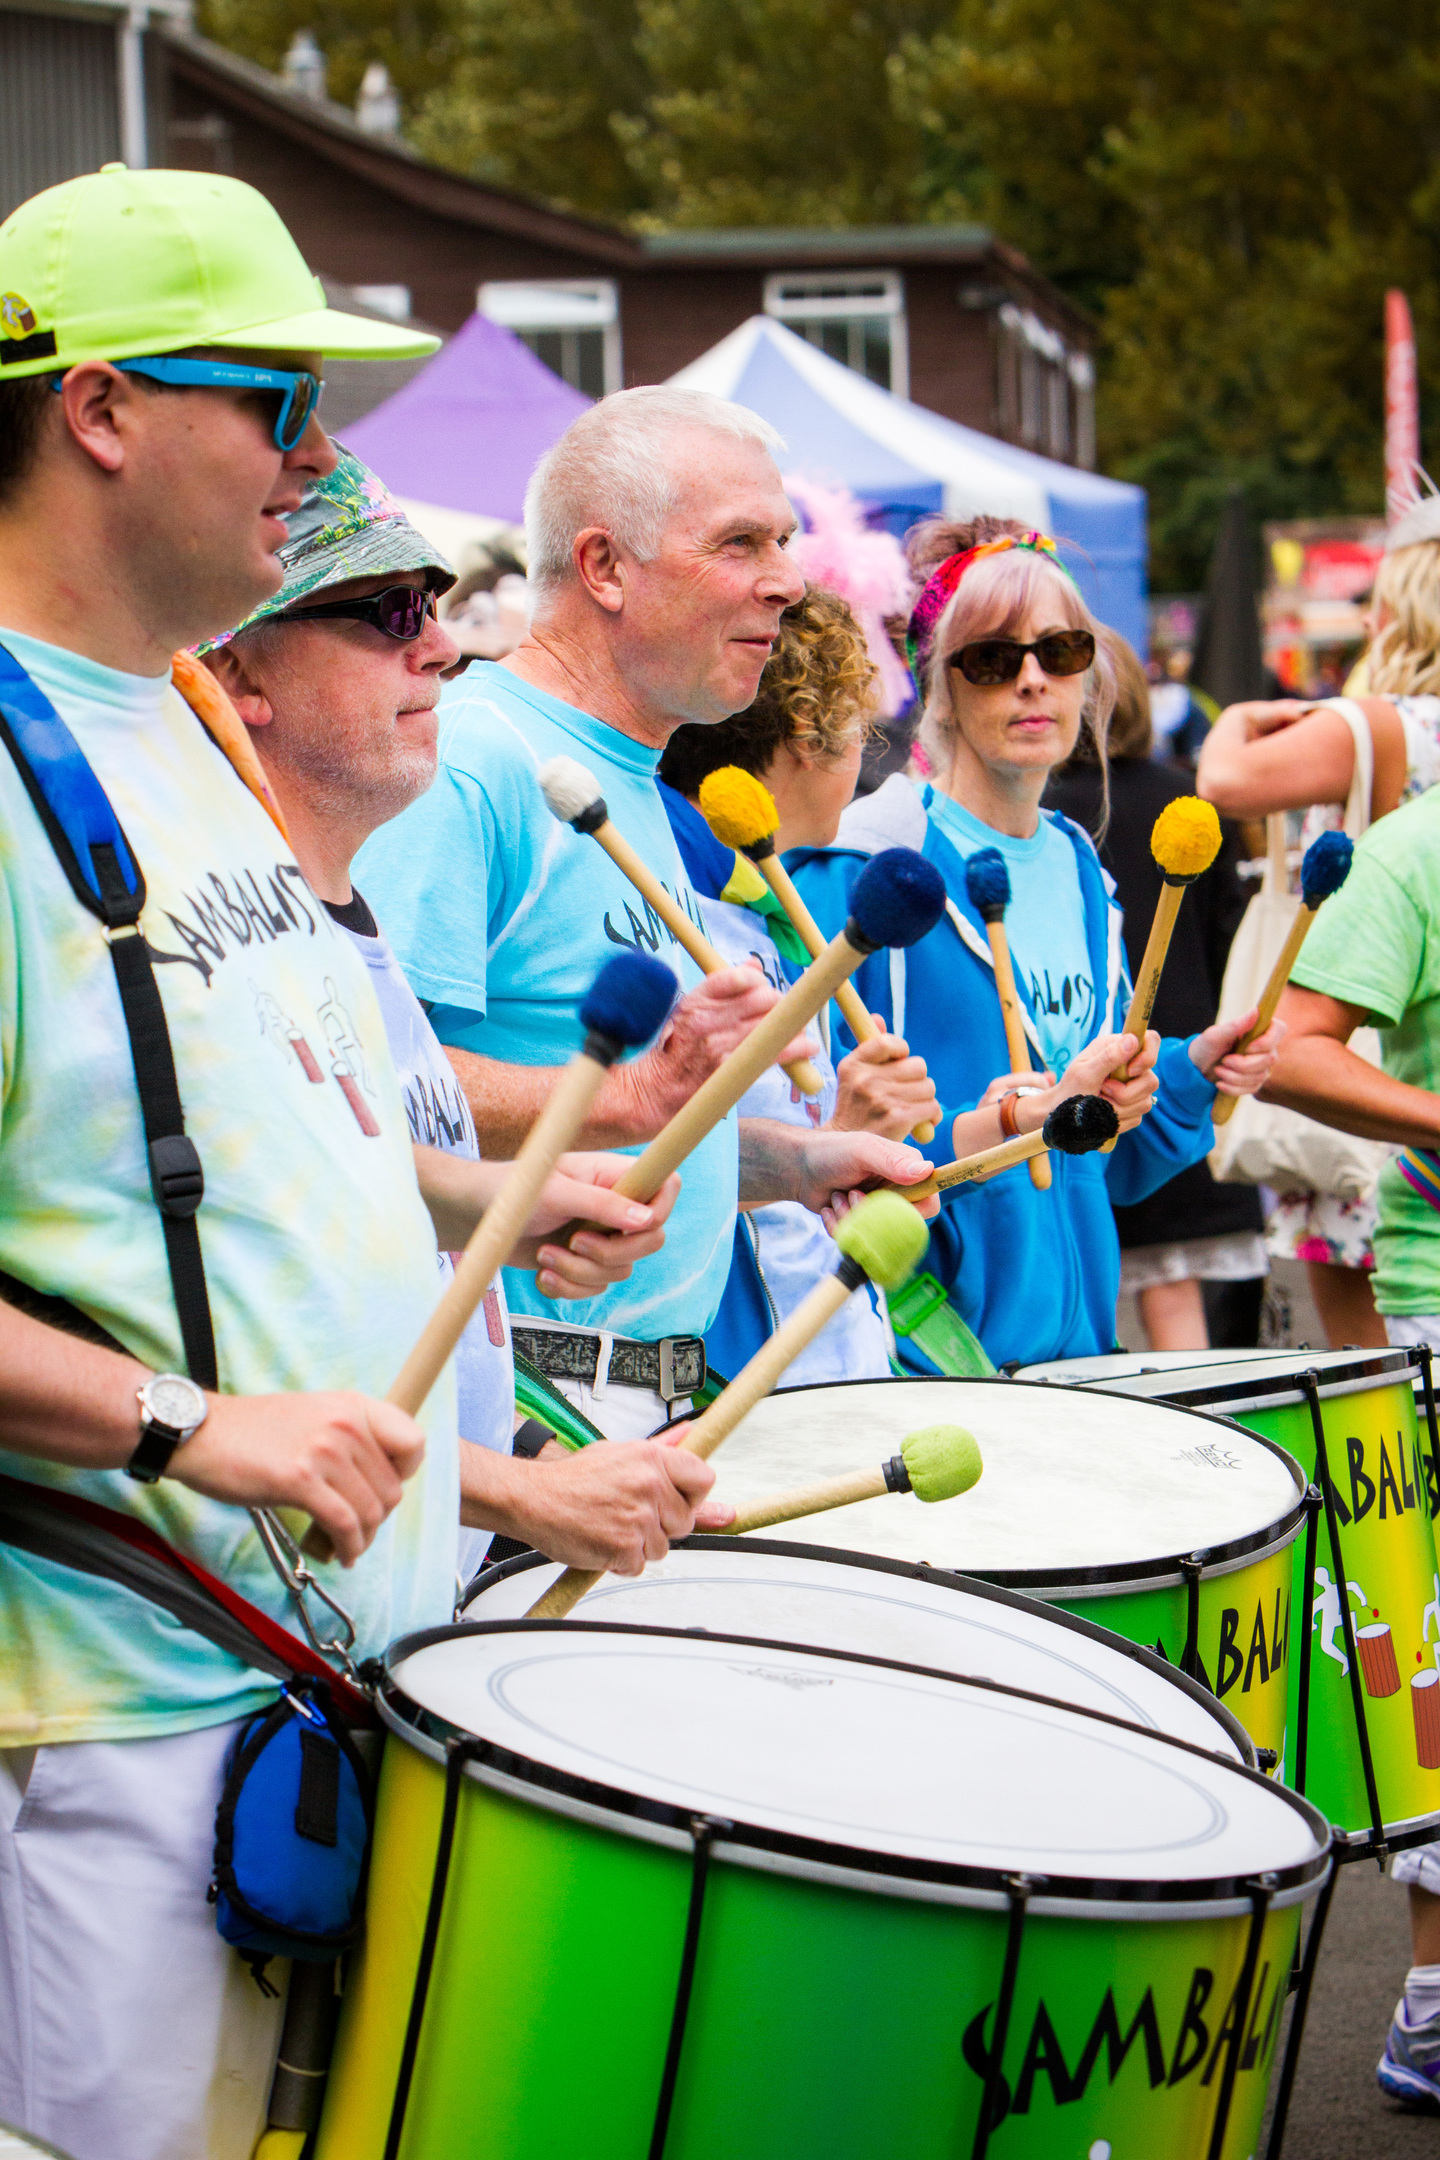 Courier News - Perth - Jamie Buchan Story. Spirit of Rio event as Carnival Raceday hits the Racecourse in Perth featuring music, dancing and racing. Picture shows performance by samba Band 'Sambalistic'. Perth Racecourse, off Isla Road, Perth. Saturday 20th August 2016.